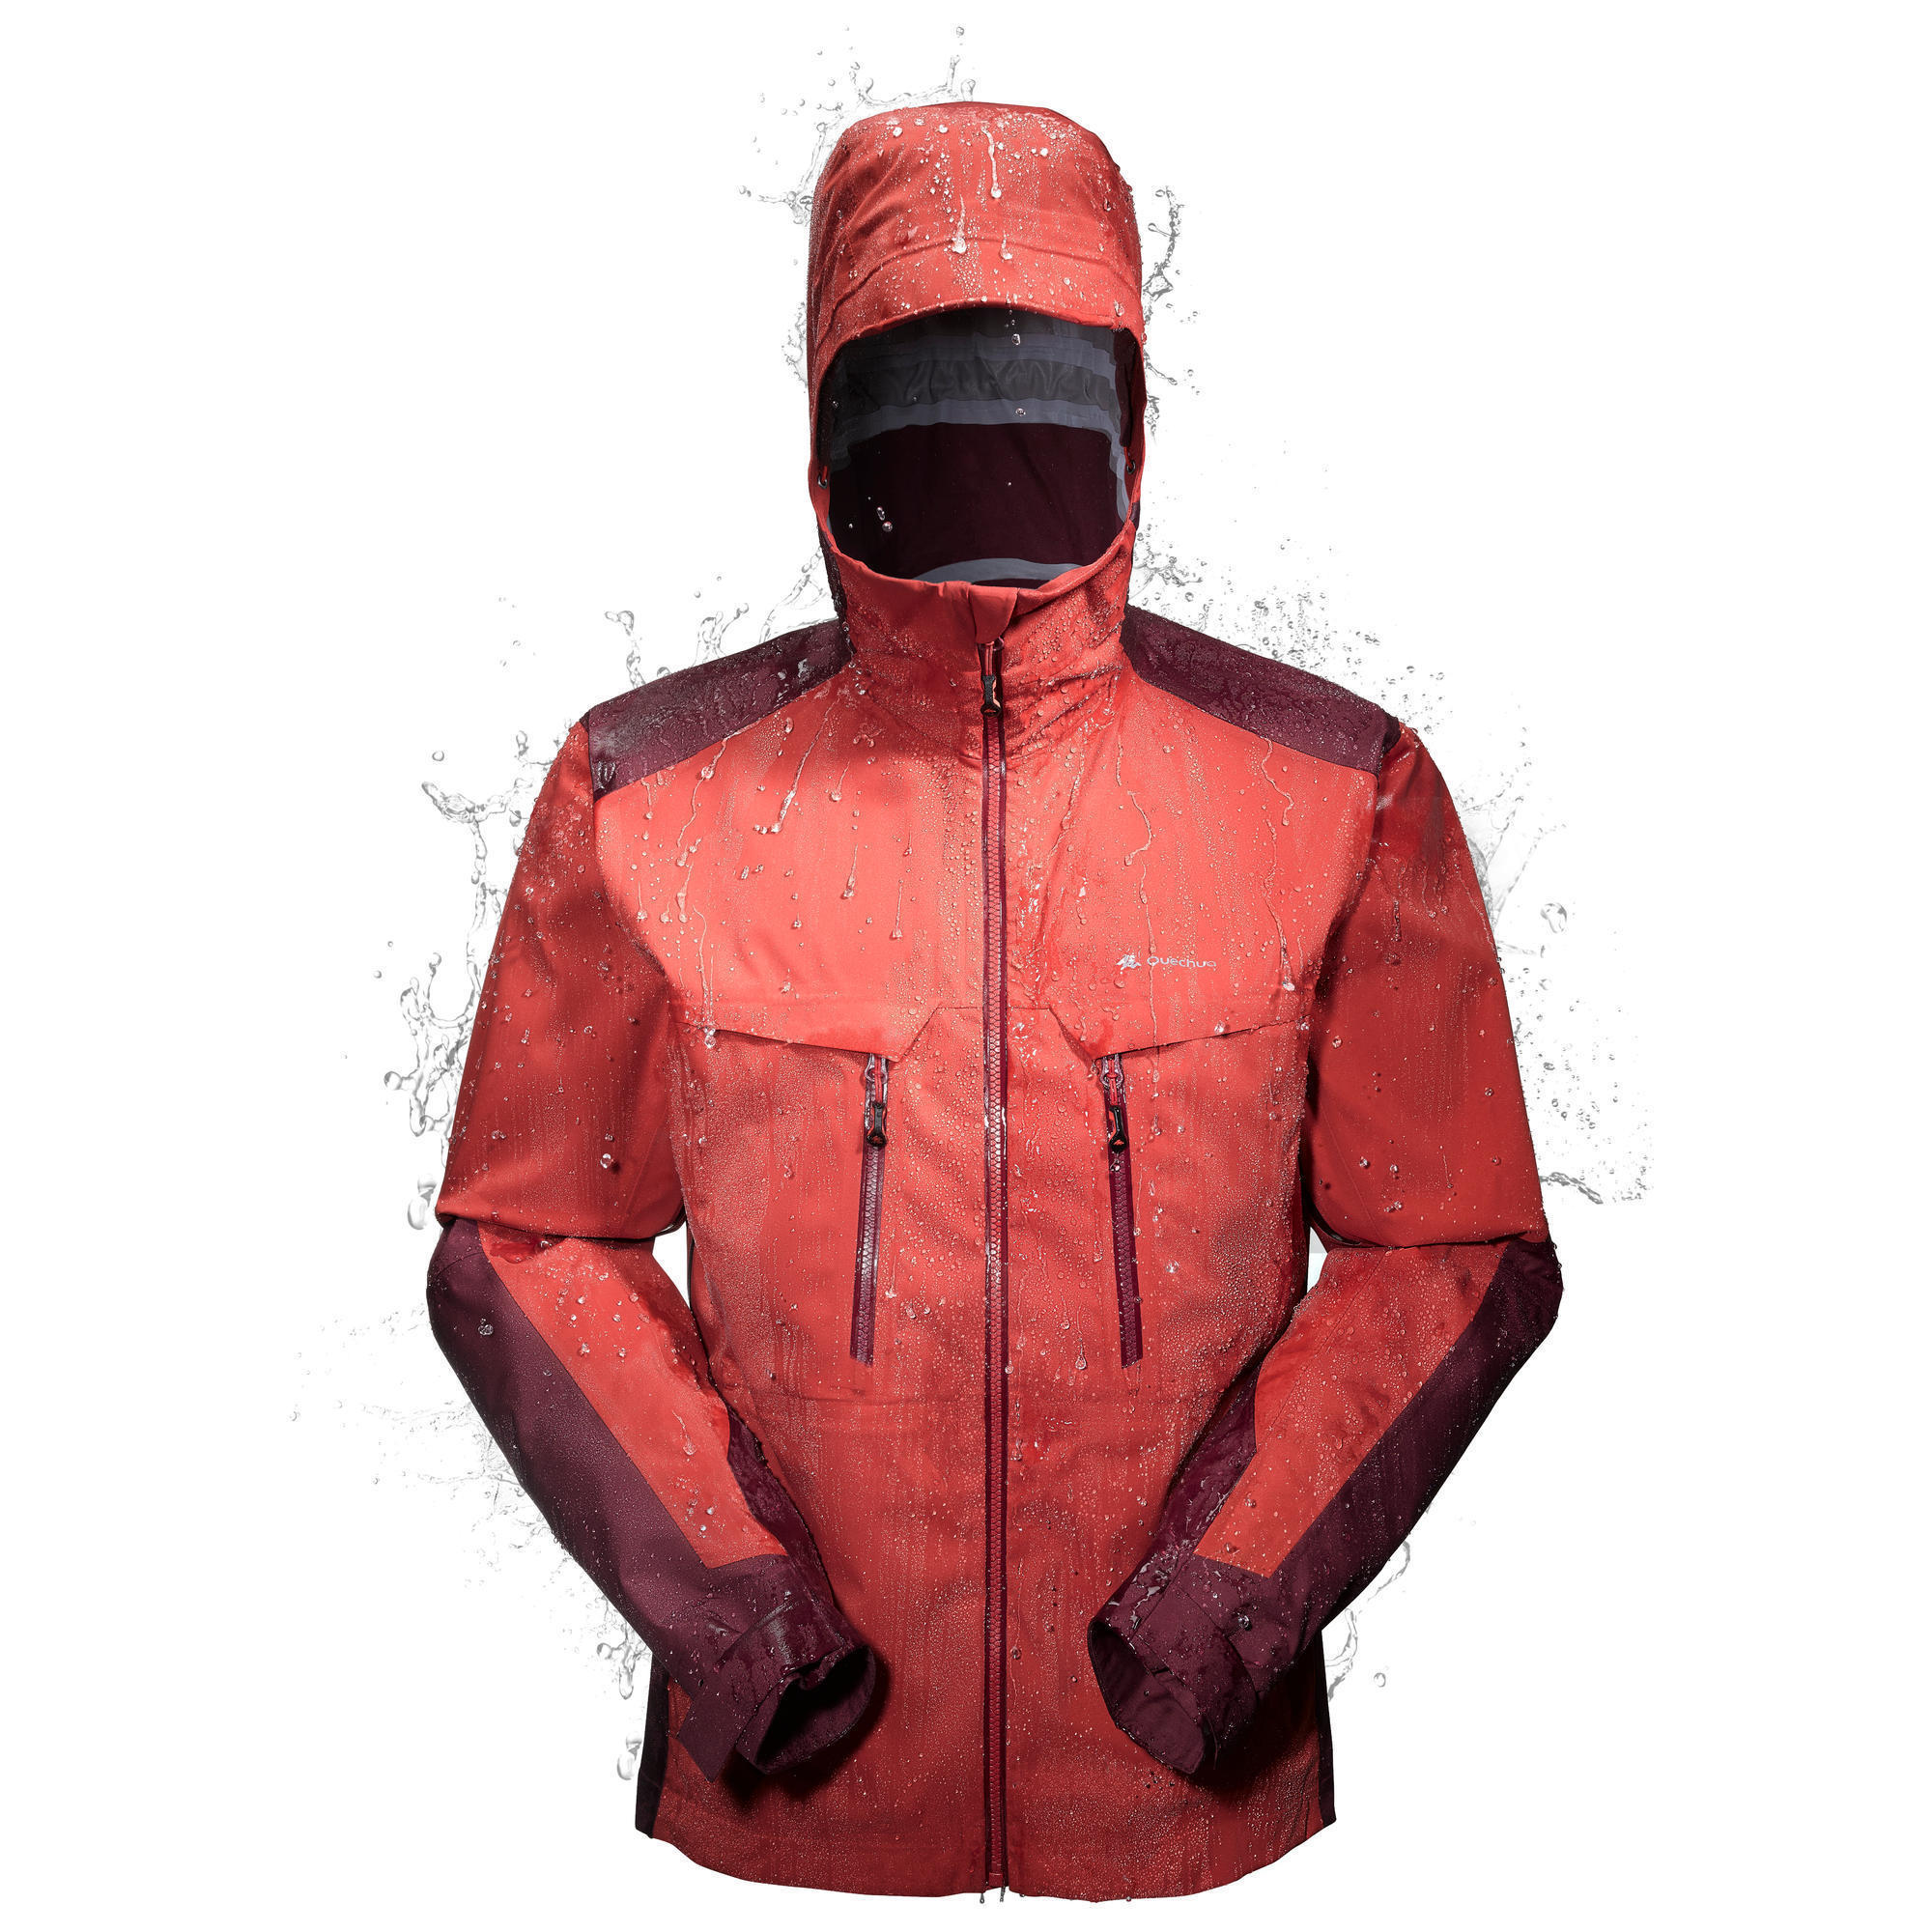 veste pluie imperm able randonn e montagne homme forclaz 900 rouge quechua. Black Bedroom Furniture Sets. Home Design Ideas